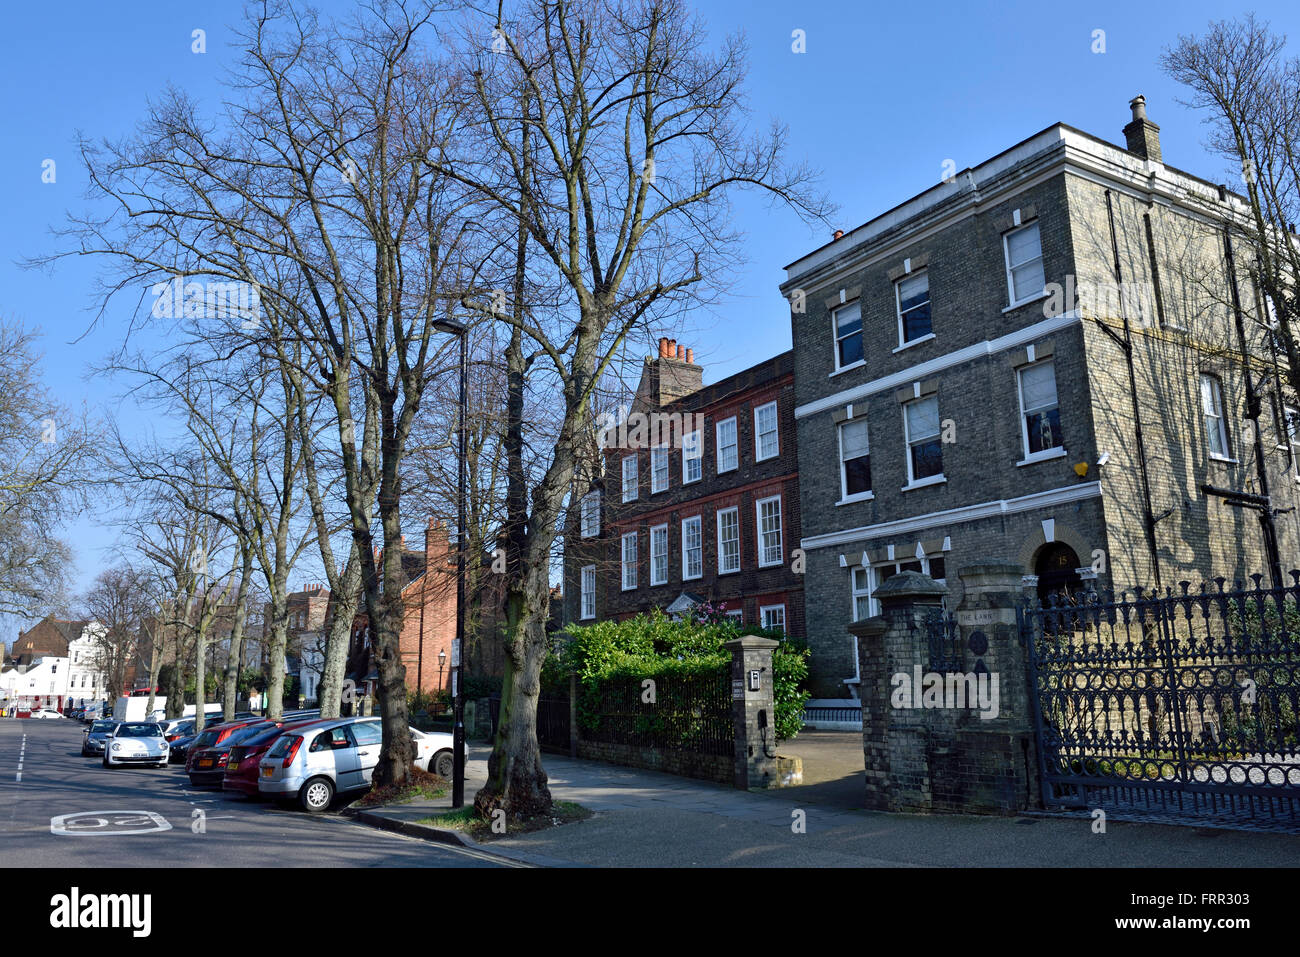 Residential street Highgate Village with houses London England Britain UK Stock Photo